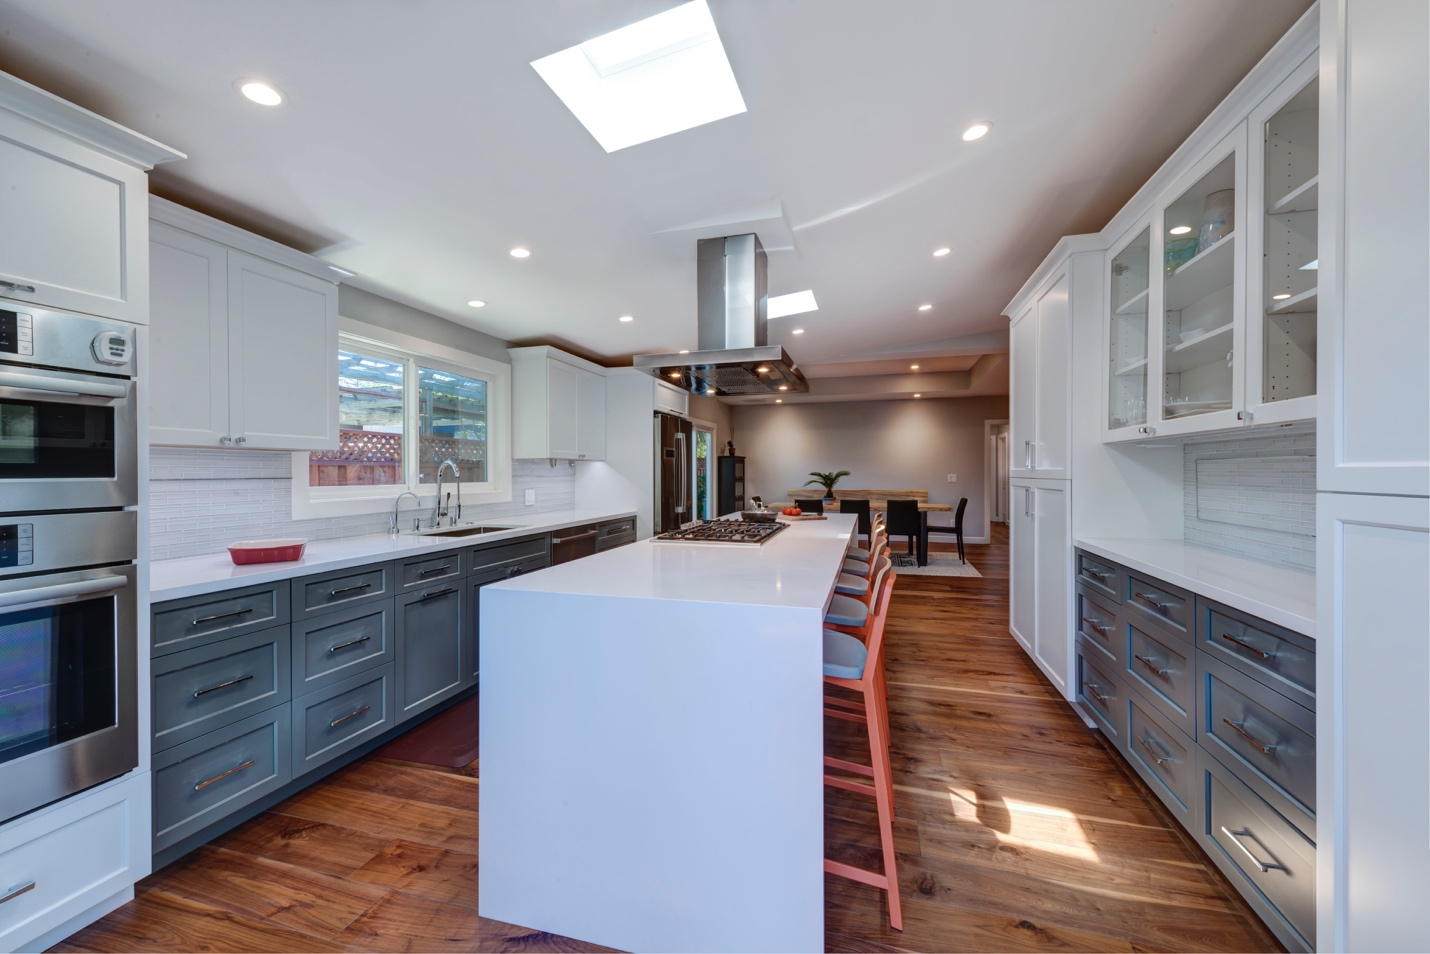 Modern large kitchen, architect design work, Sunnyvale